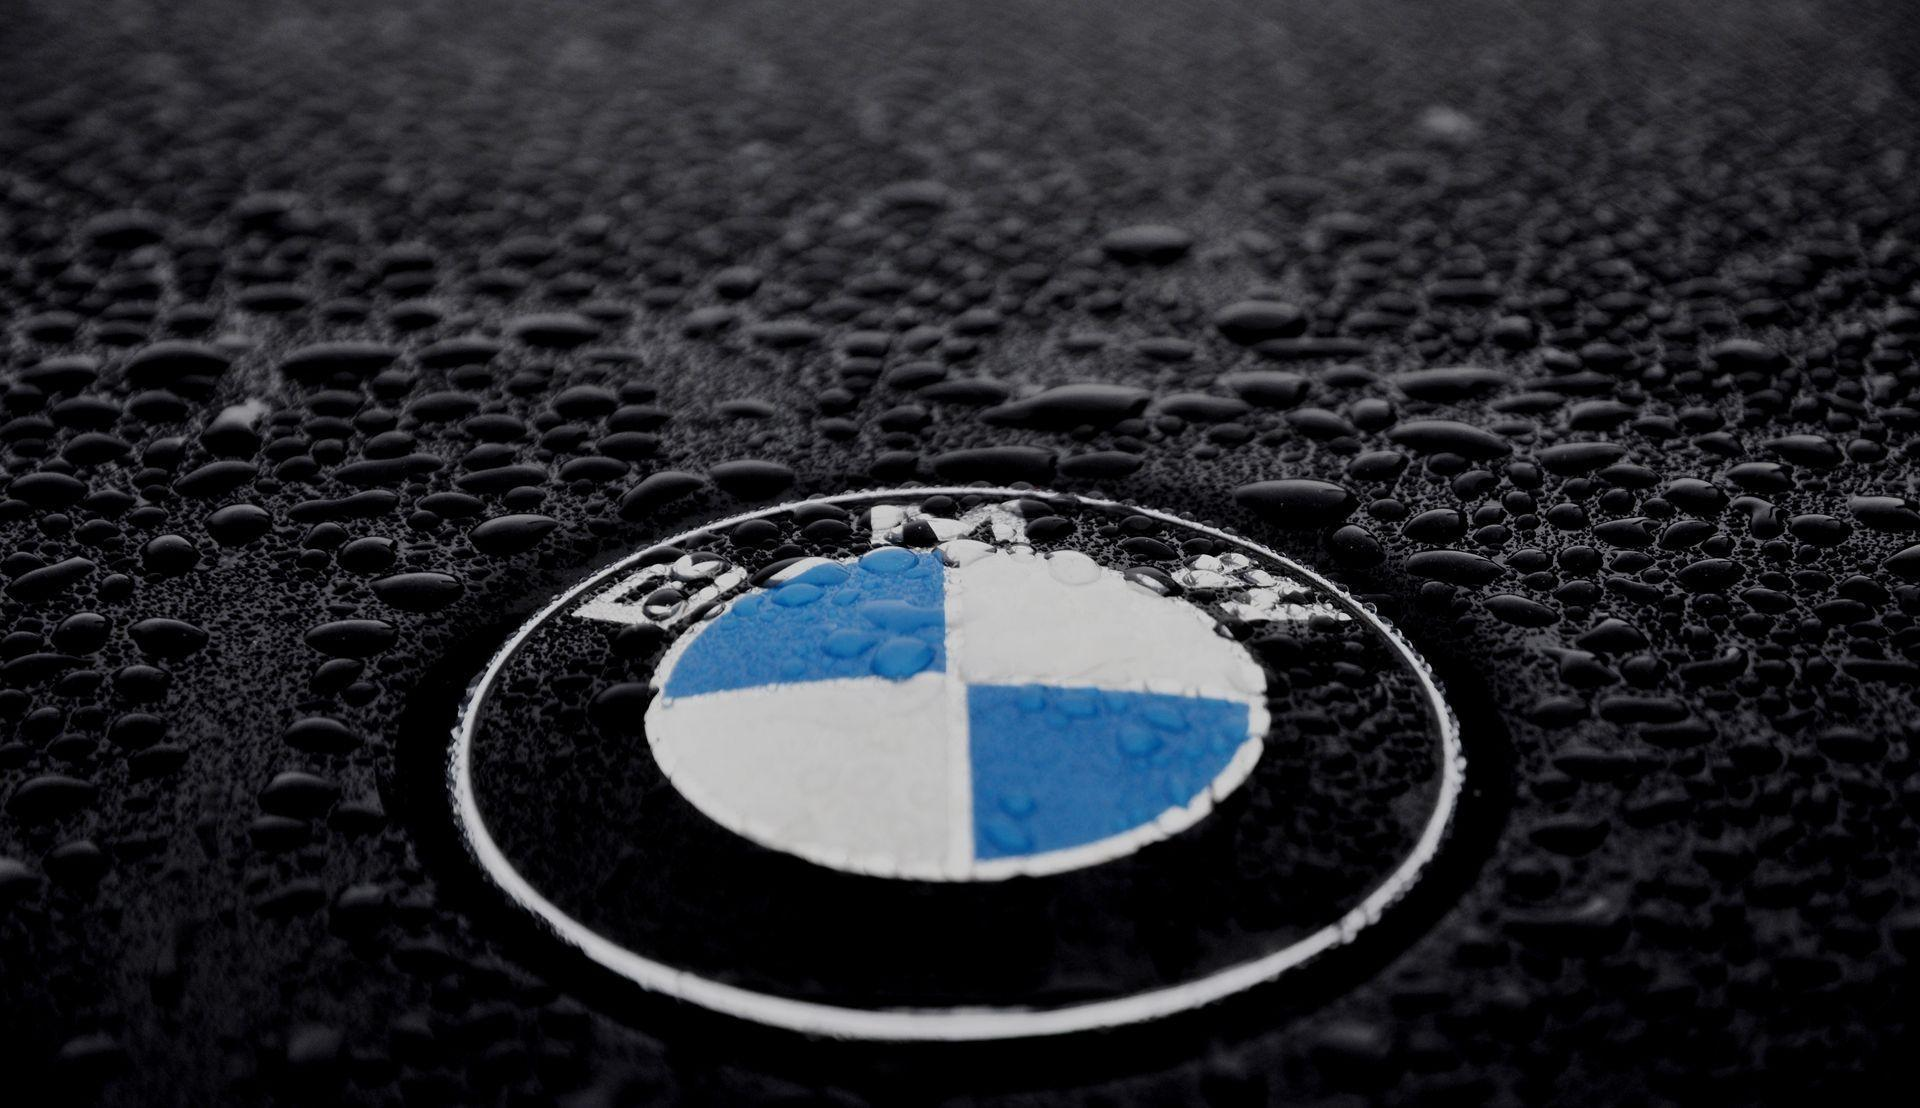 Bmw Logo Wallpapers Top Free Bmw Logo Backgrounds Wallpaperaccess